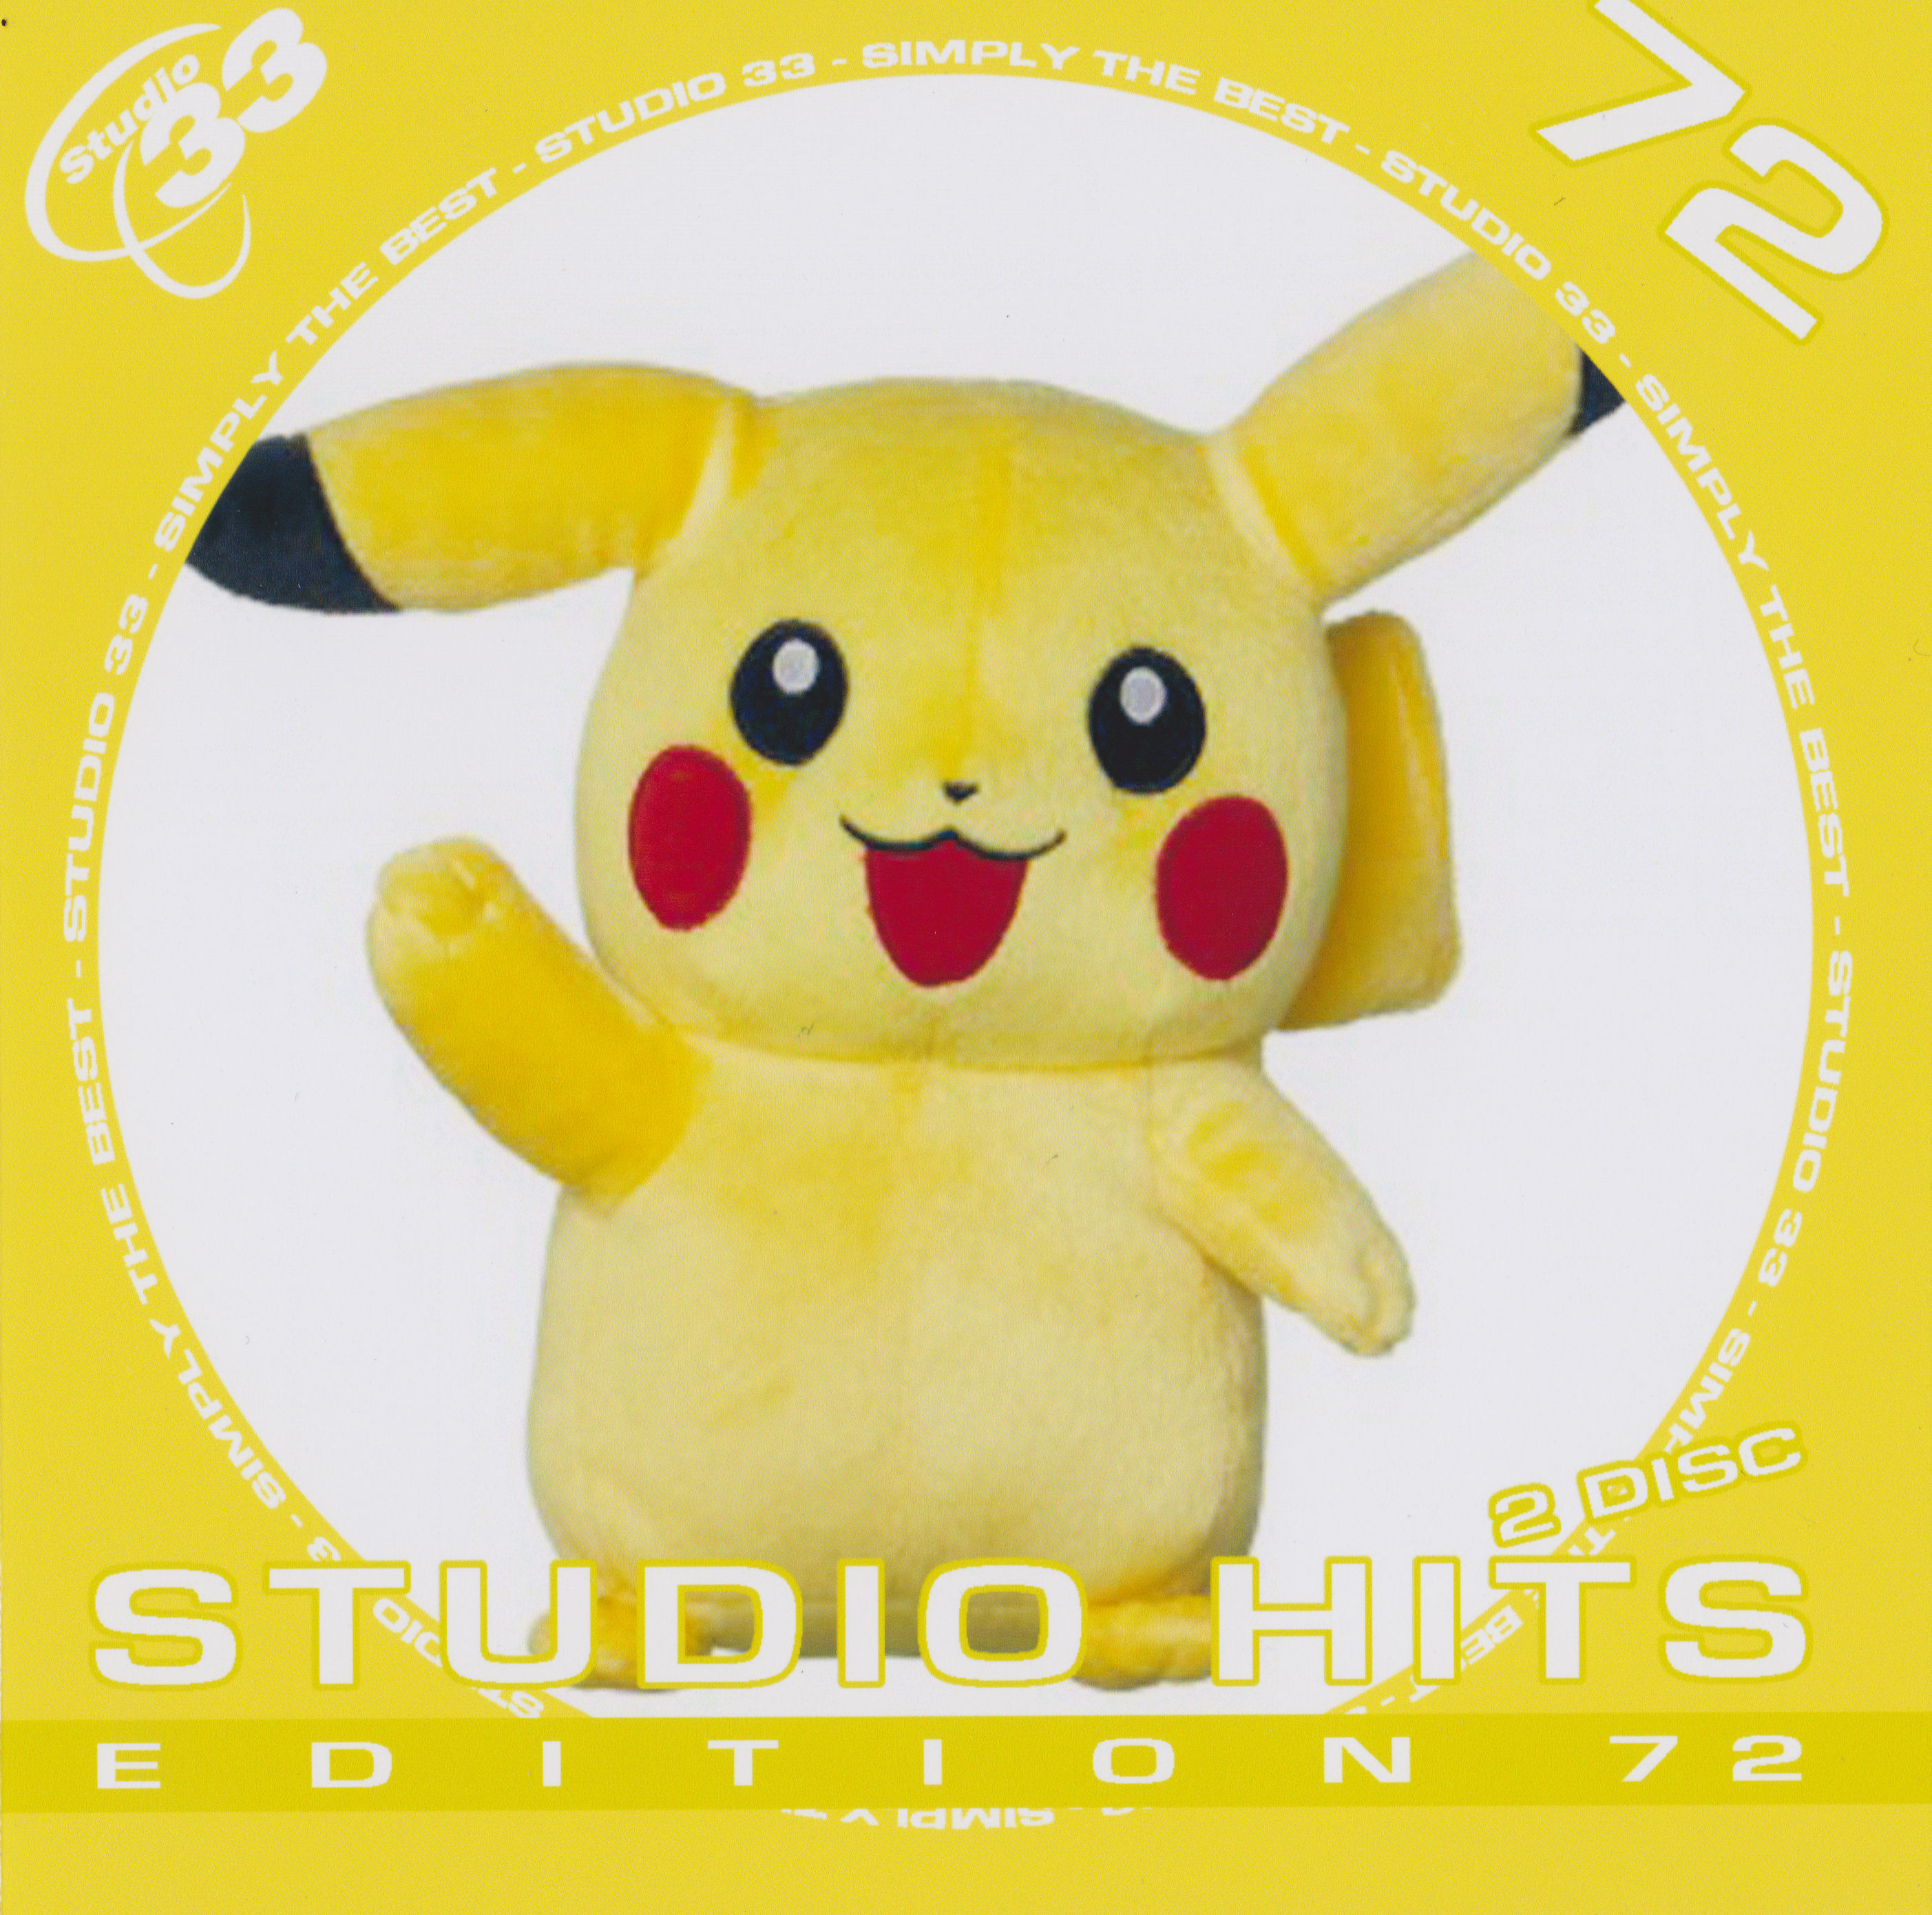 : Studio 33 Hits Edition 72